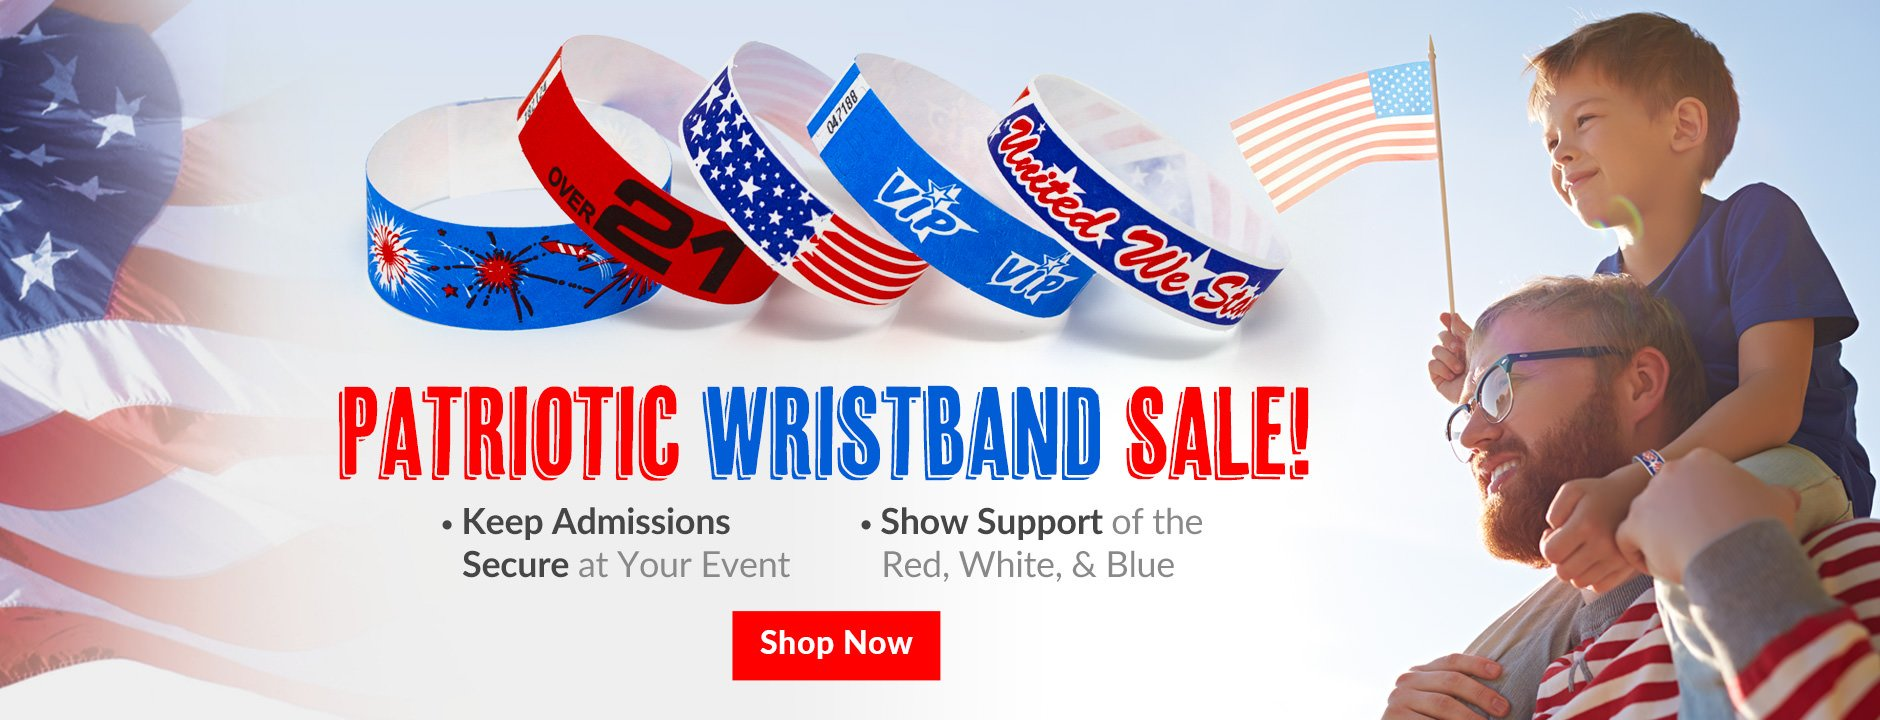 Patriotic Wristbands